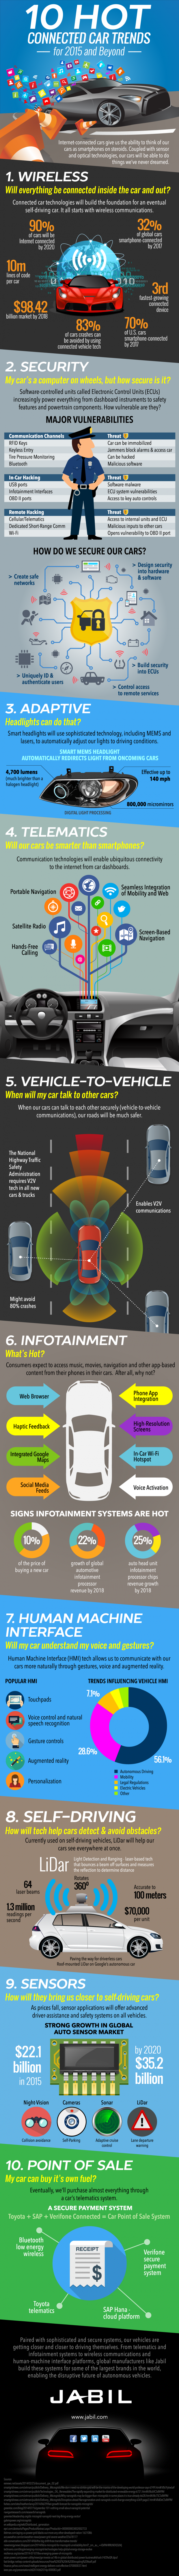 Connected-Cars-Infographic-v5